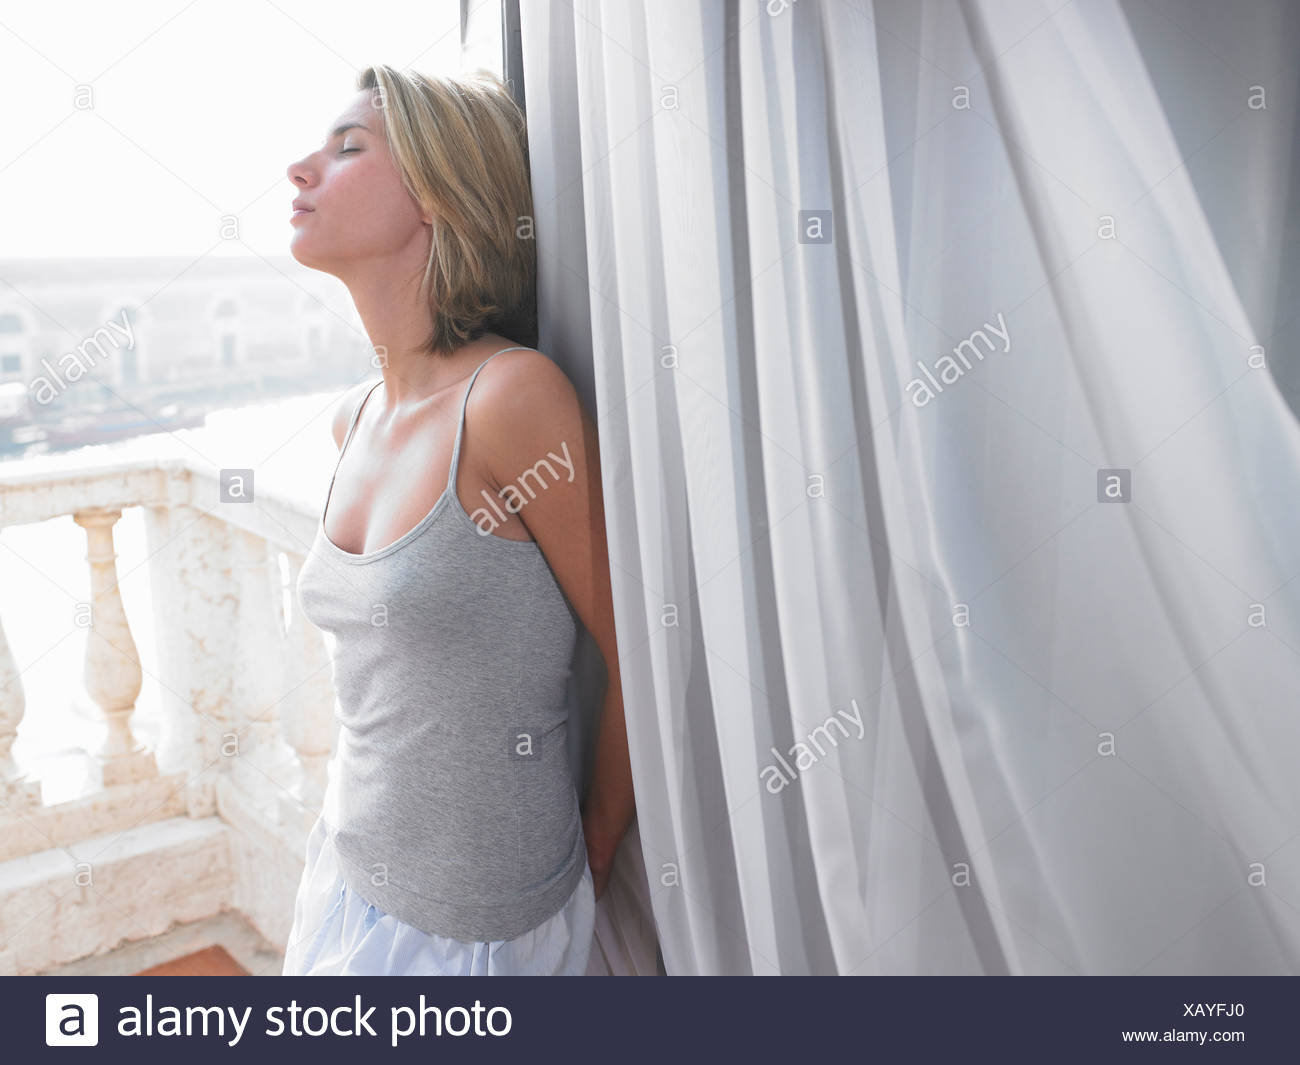 Woman in her pyjamas, on the balcony - Stock Image